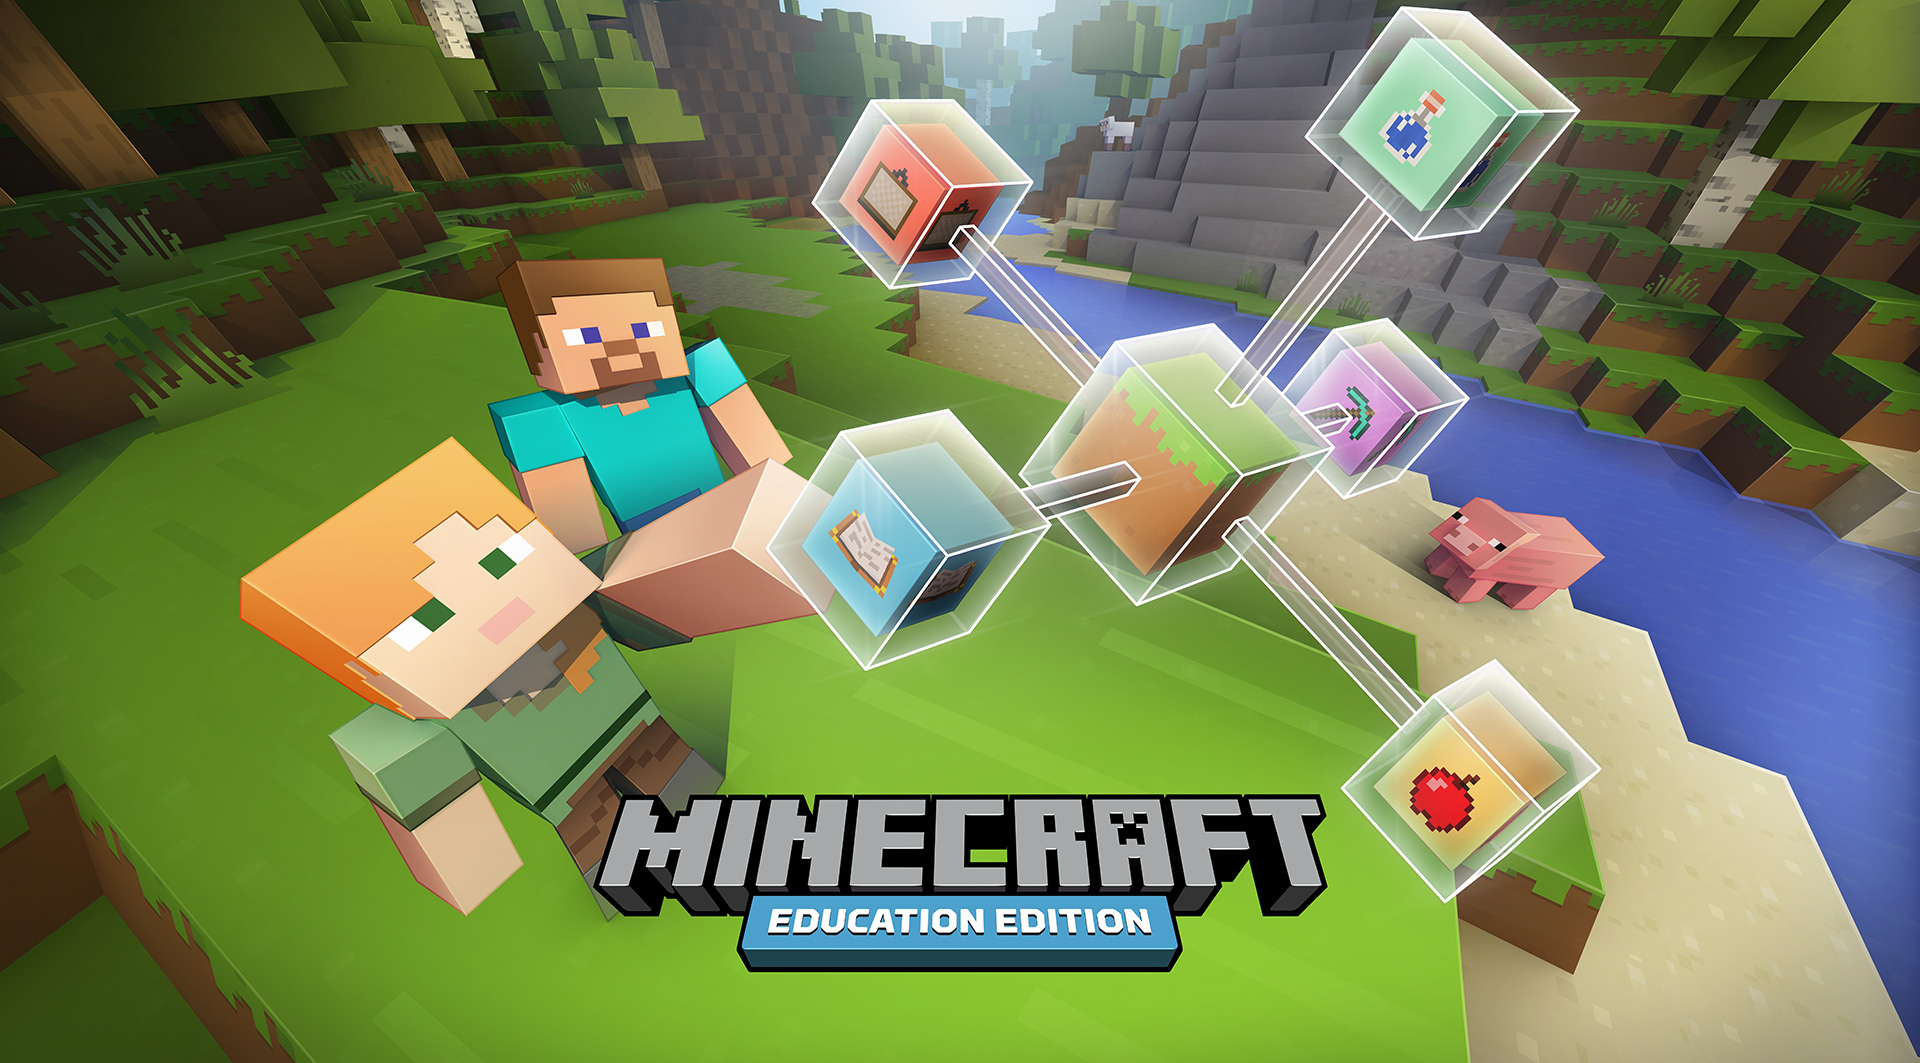 microsoft, minecraft, mojang, minecraftedu, minecraft education edition